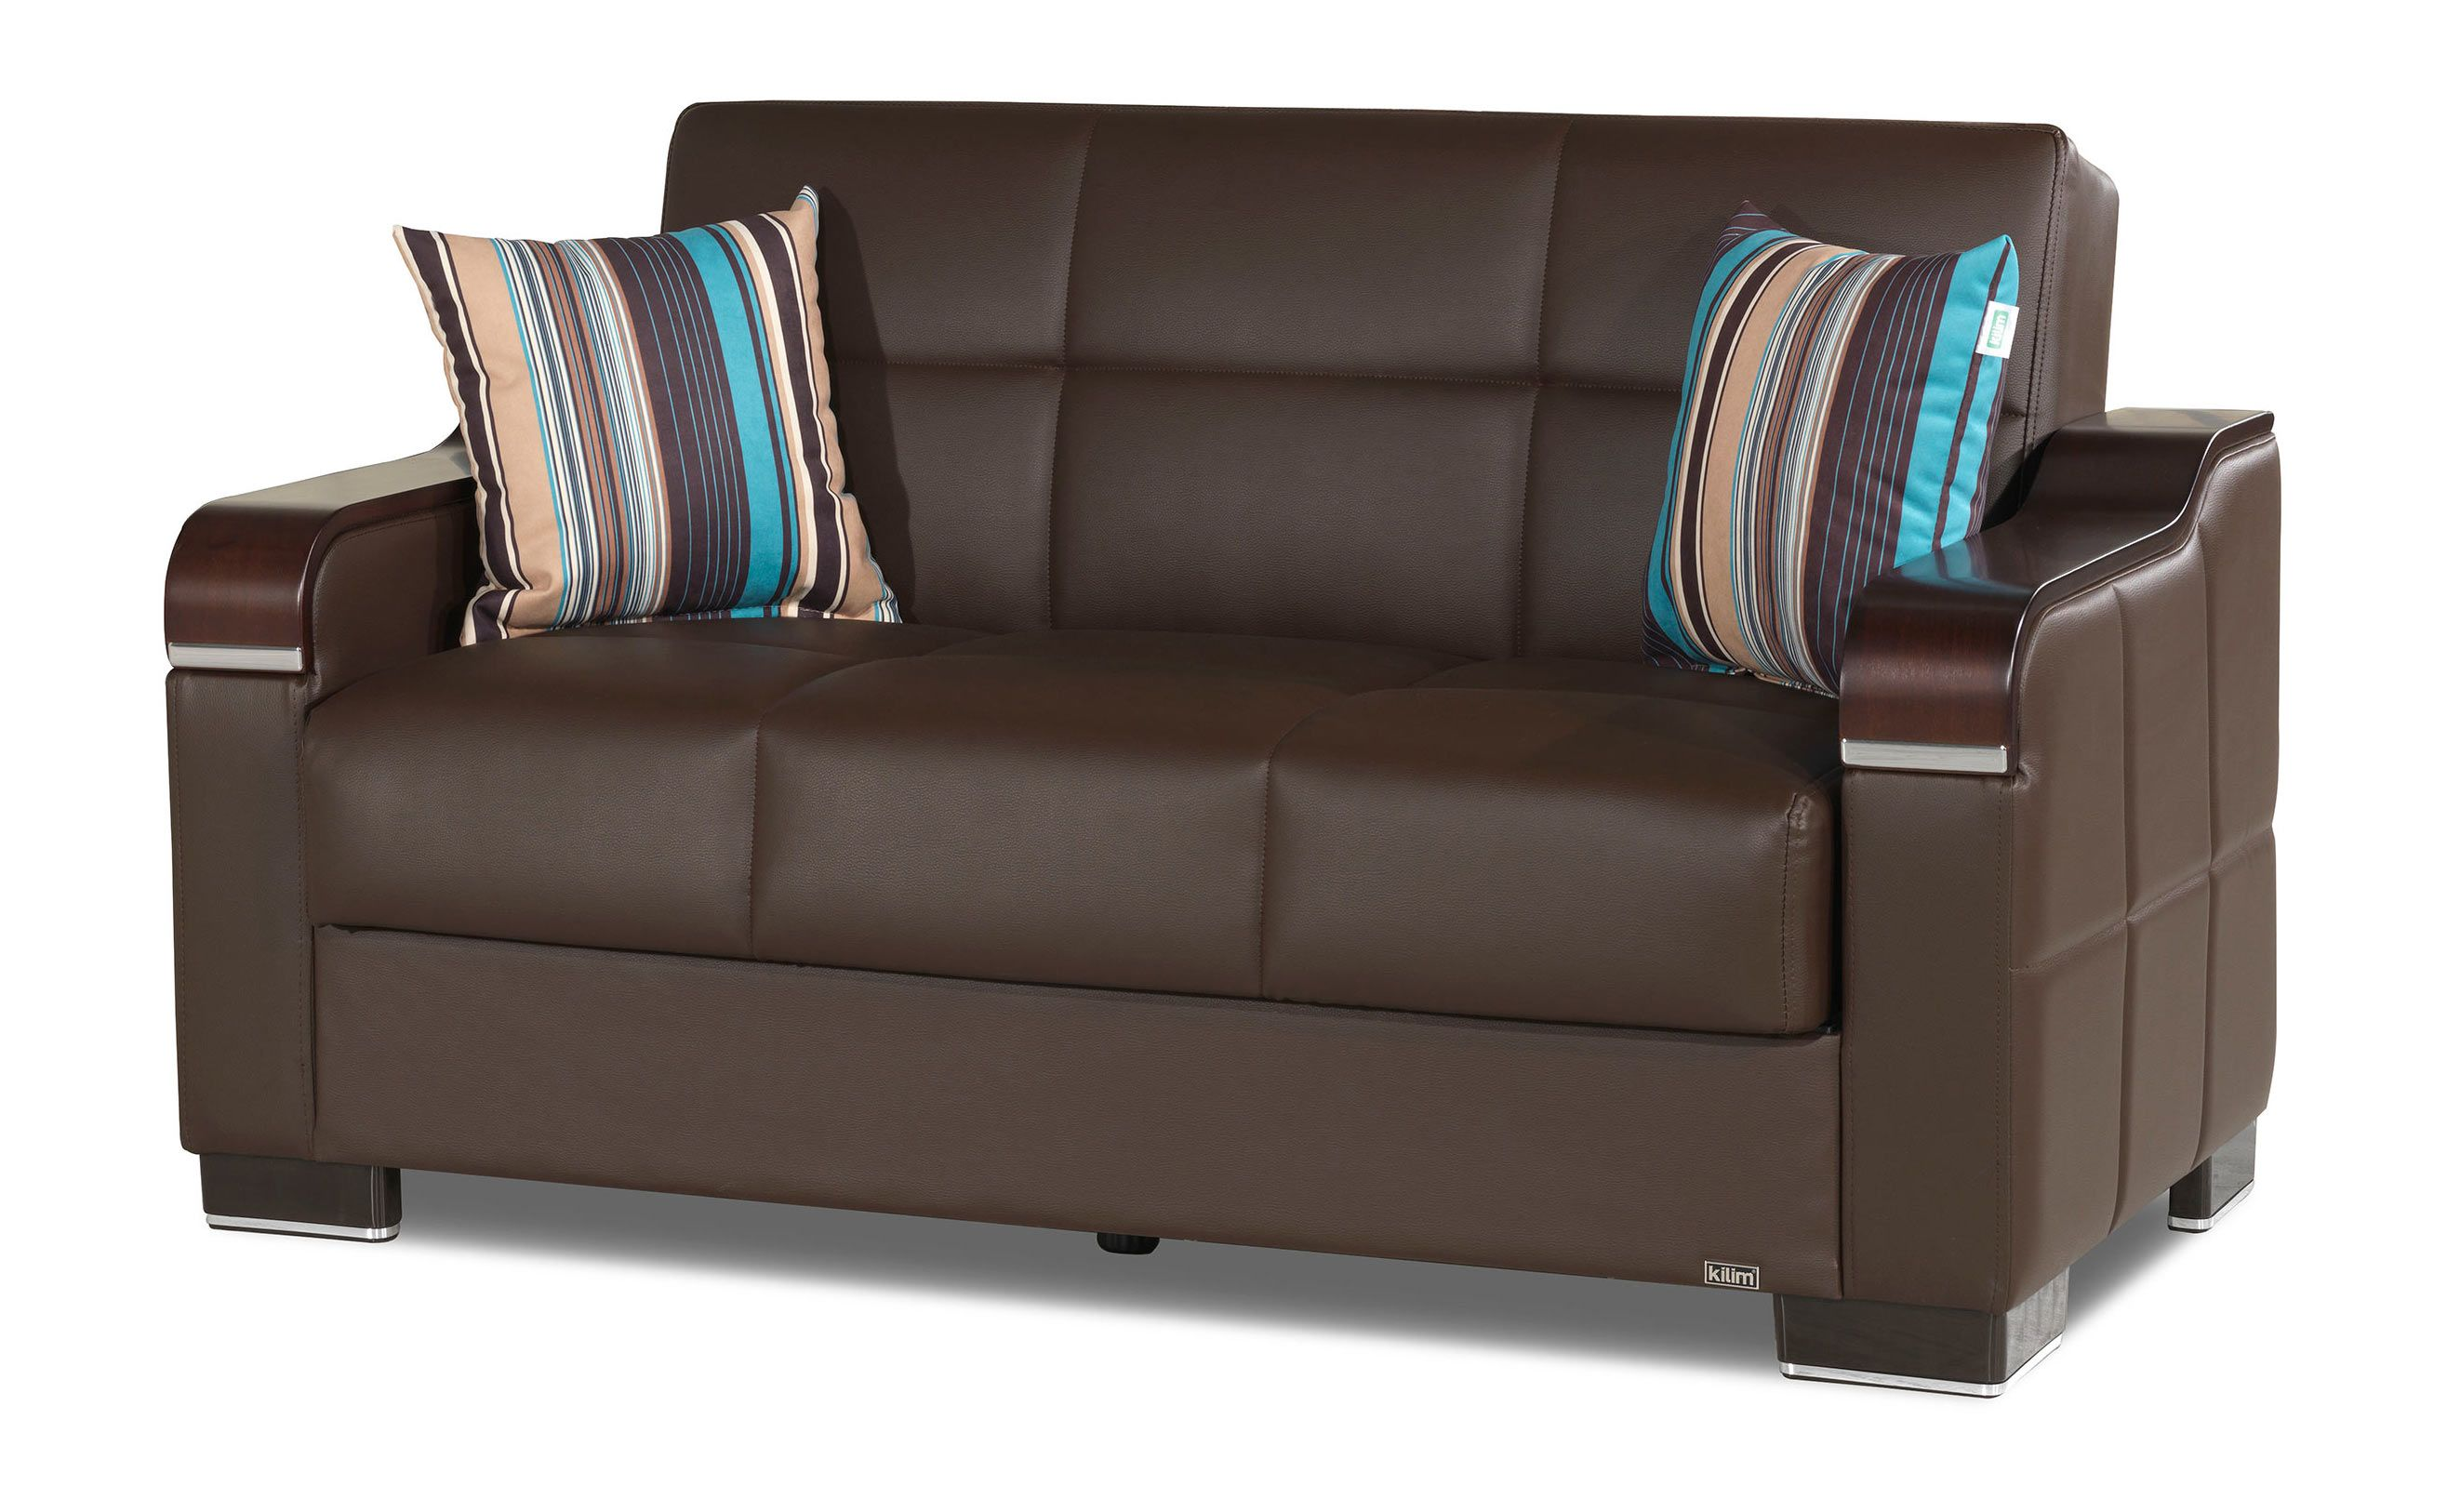 Uptown Brown PU Leather Convertible Loveseat by Casamode